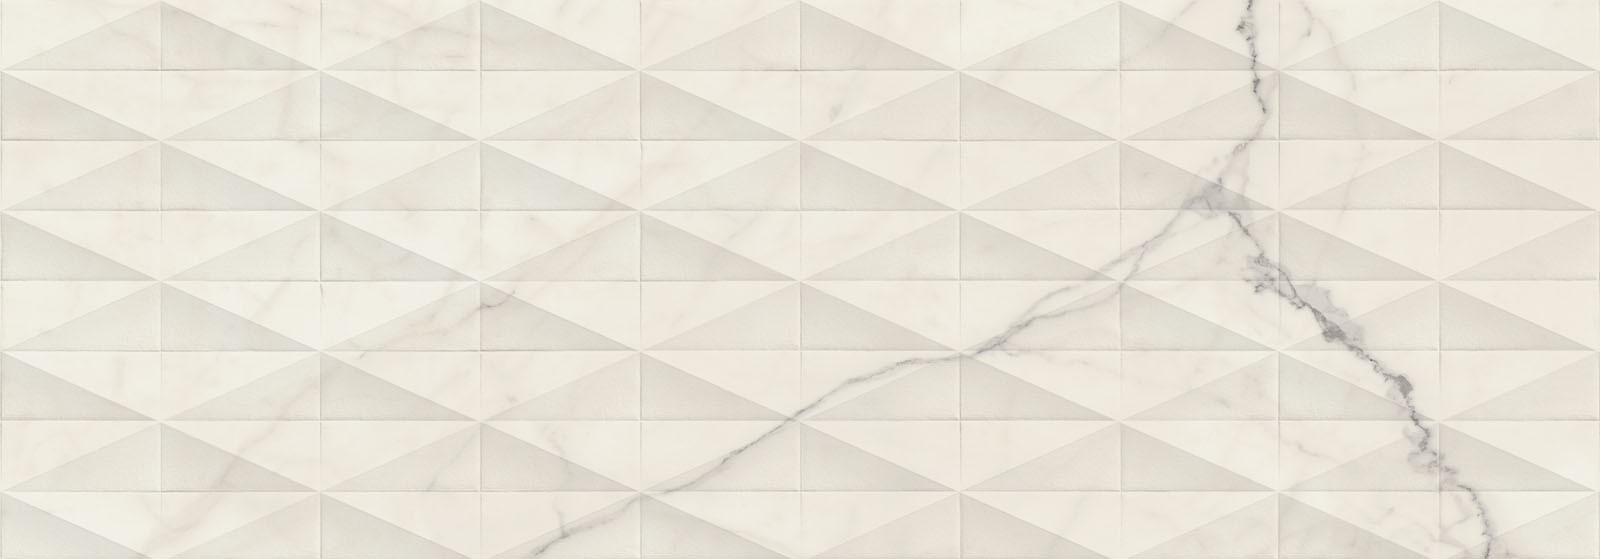 Стенни плочки Allmarble Wall Statuario Struttura Pave 3D Lux 40x120